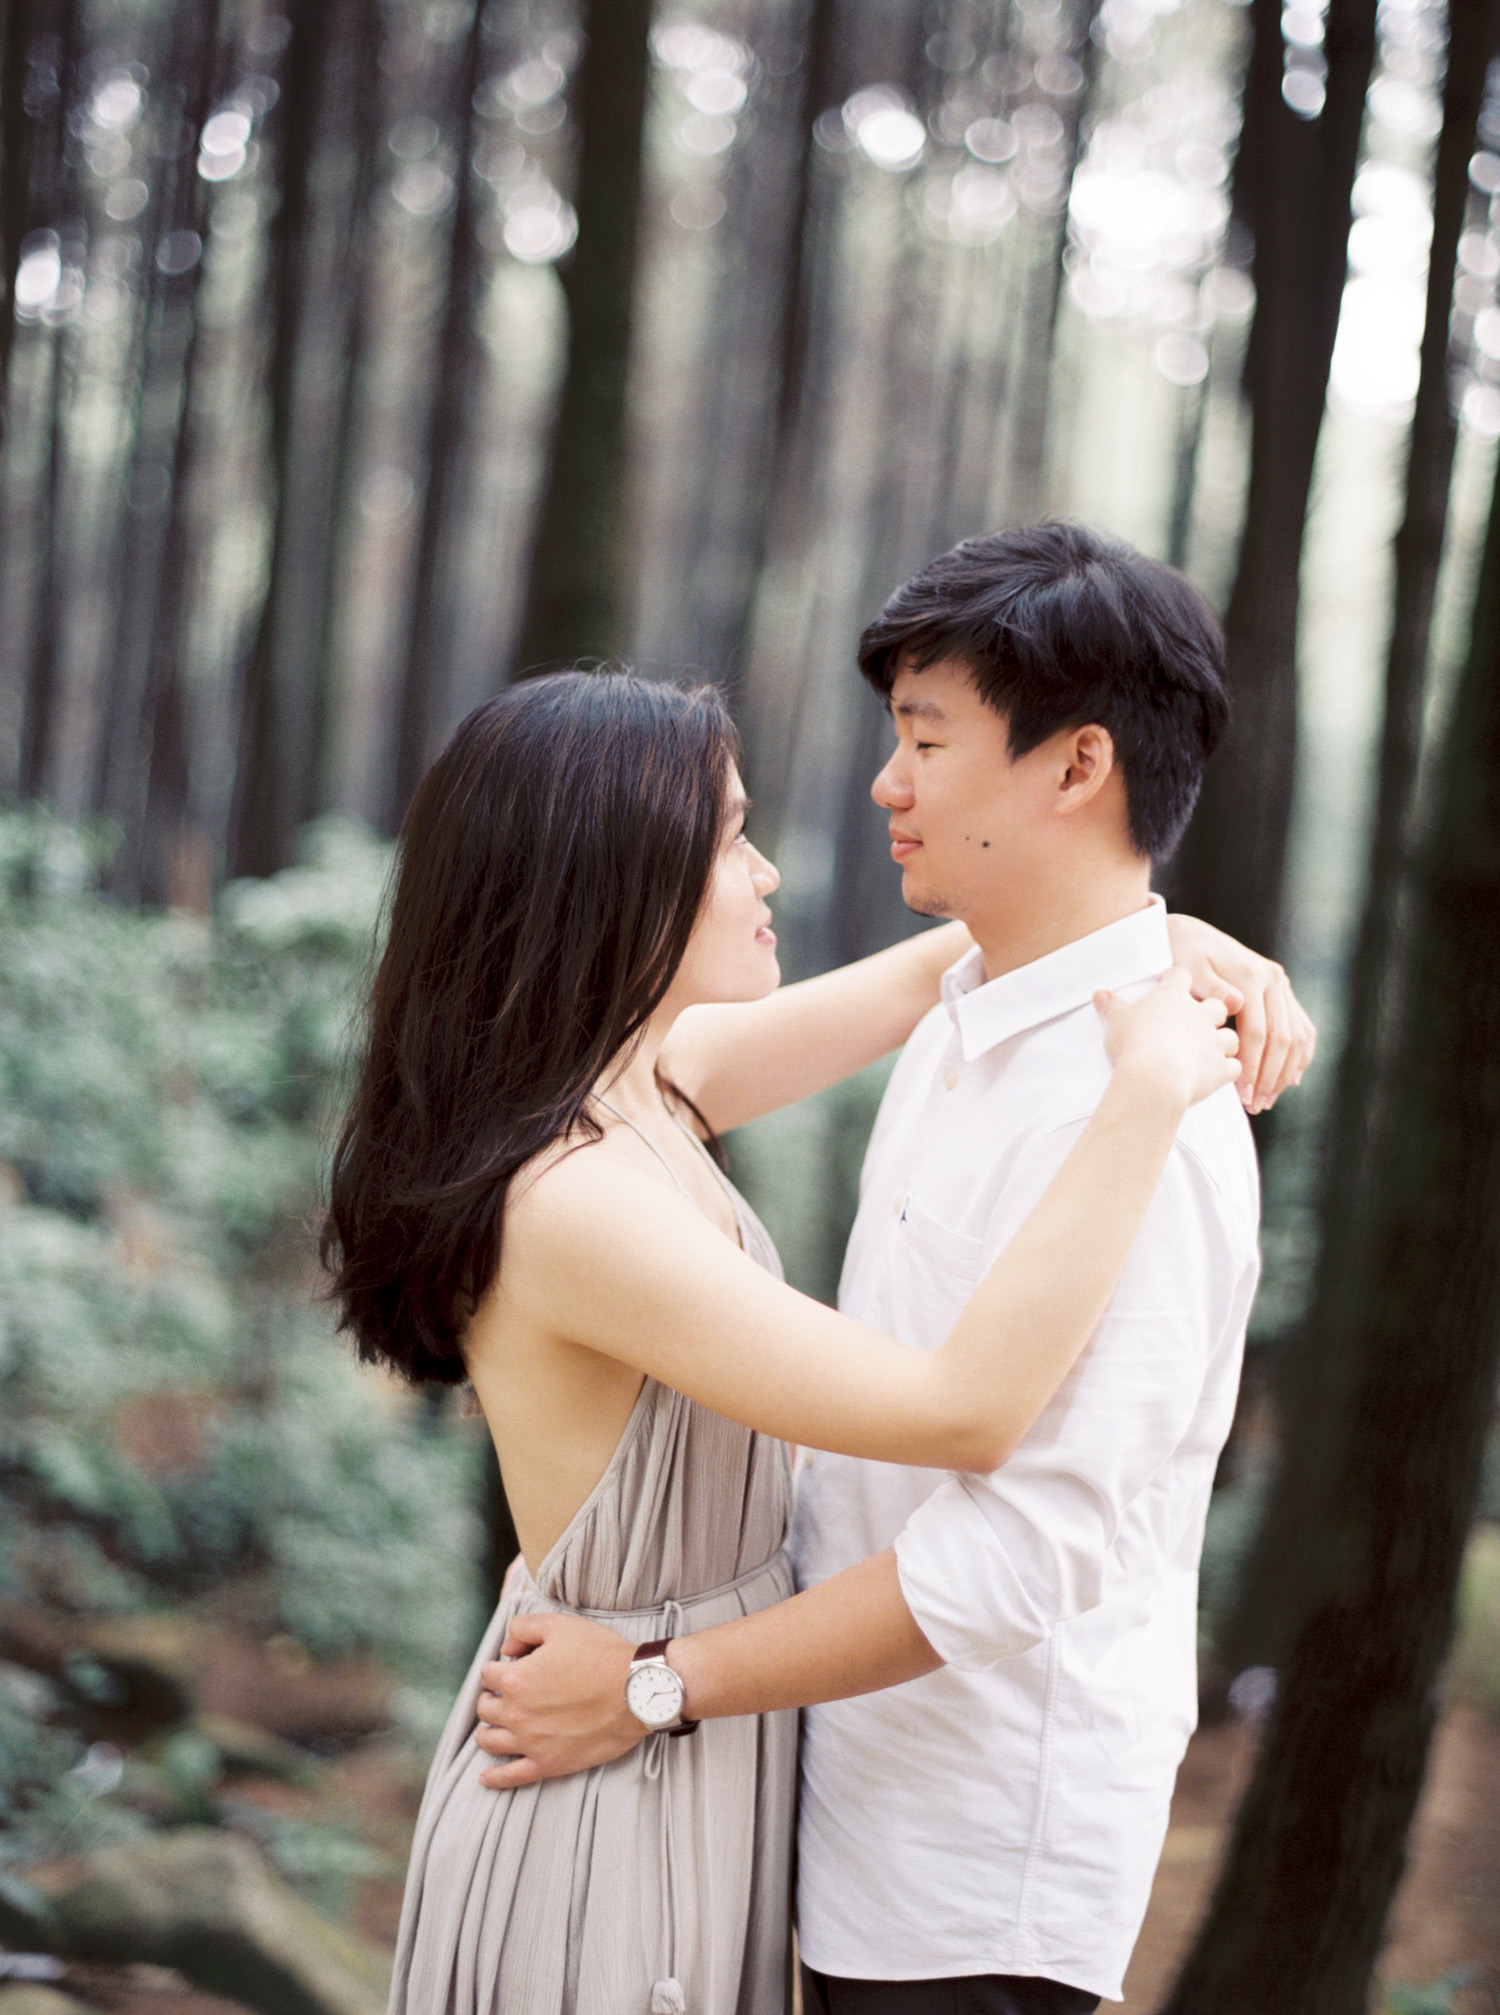 34-nature-outdoor-forest-prewedding-jakarta.jpg